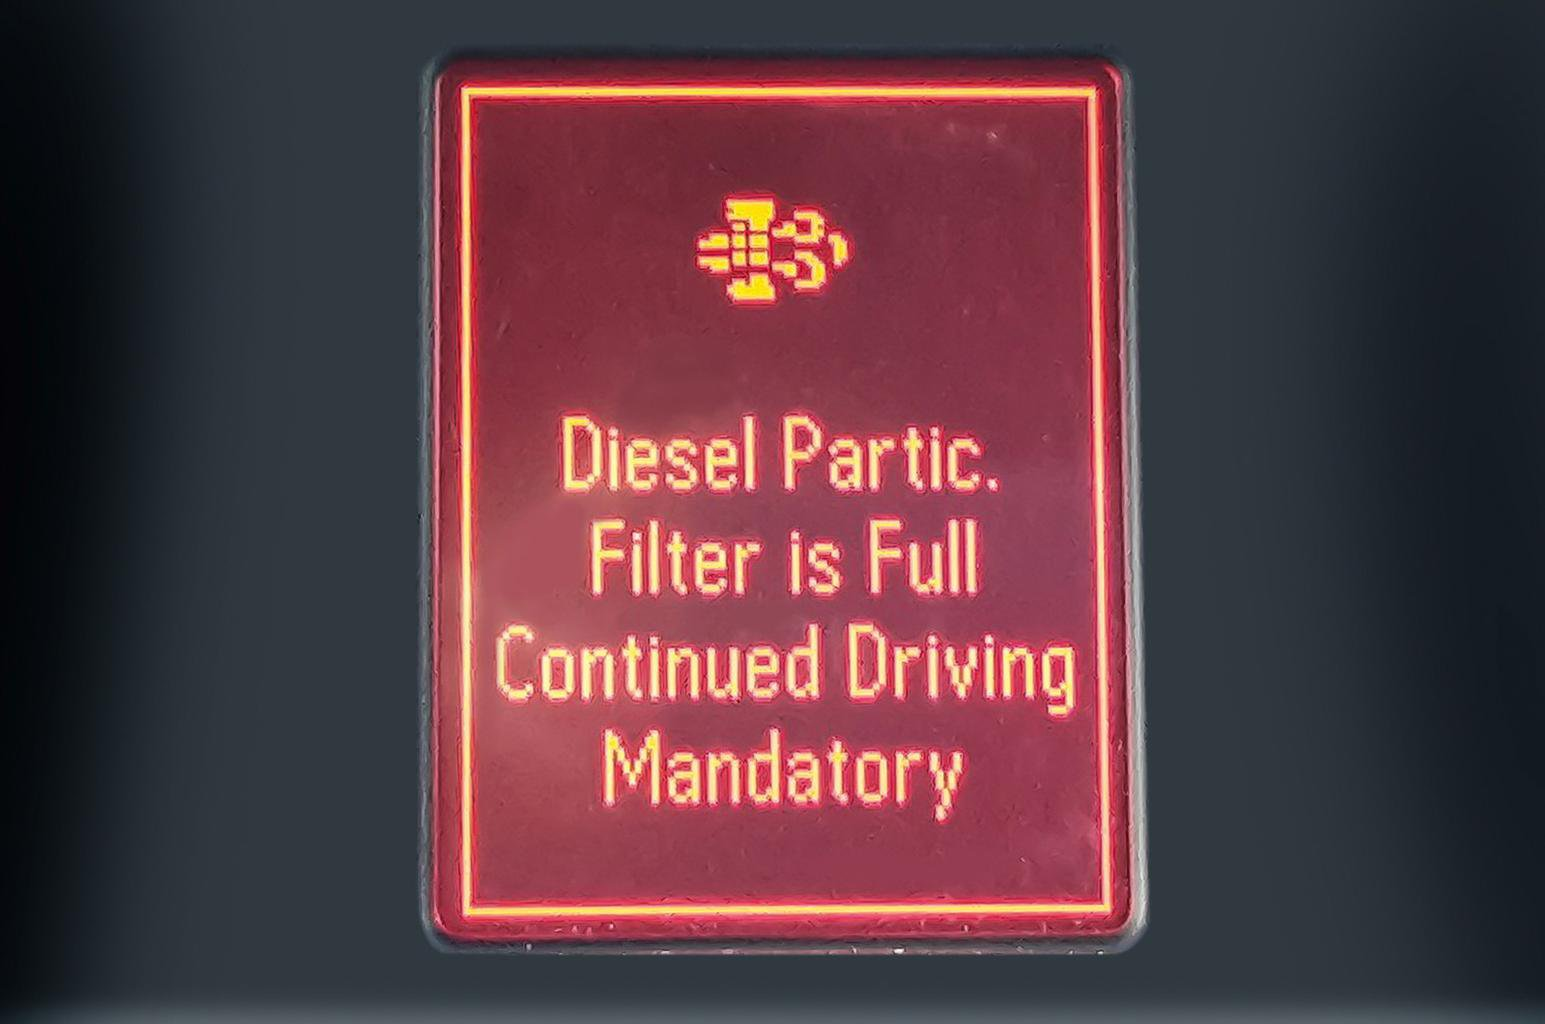 Diesel particulate filters - everything you need to know